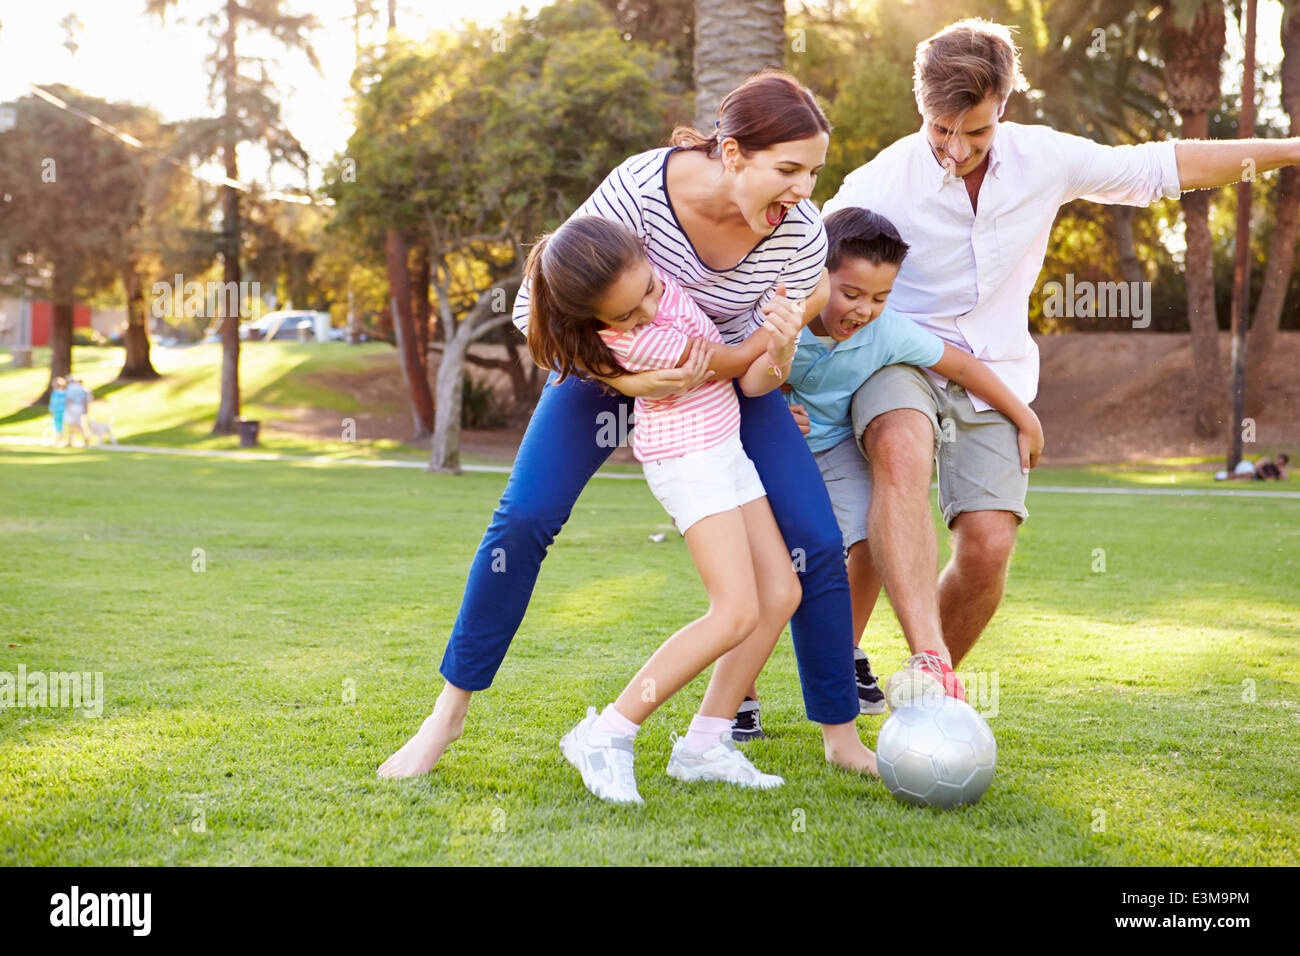 families and sports From the front desk staff to the cleaning team, one always feels welcome at sport and health colleen d - sport&health i would highly recommend this gym to anyone who is searching for a family,friendly atmosphere you won't regret sau f.